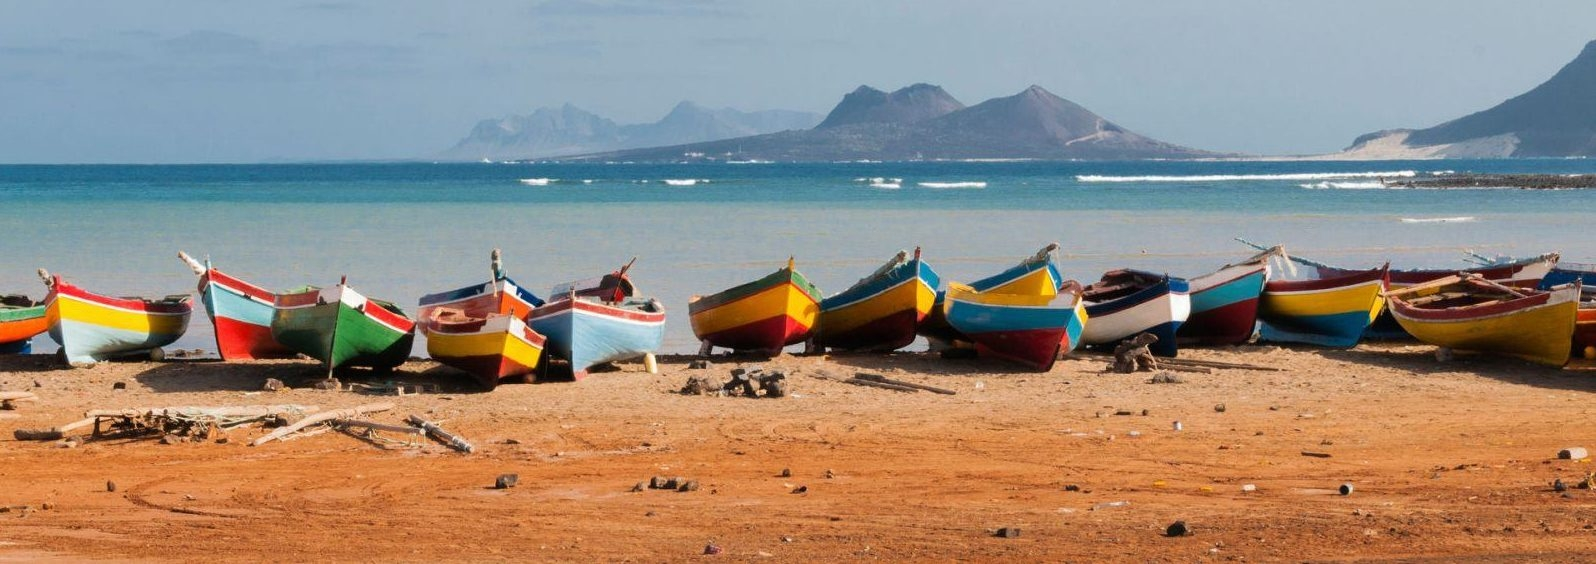 The Islands of Cape Verde Cruise